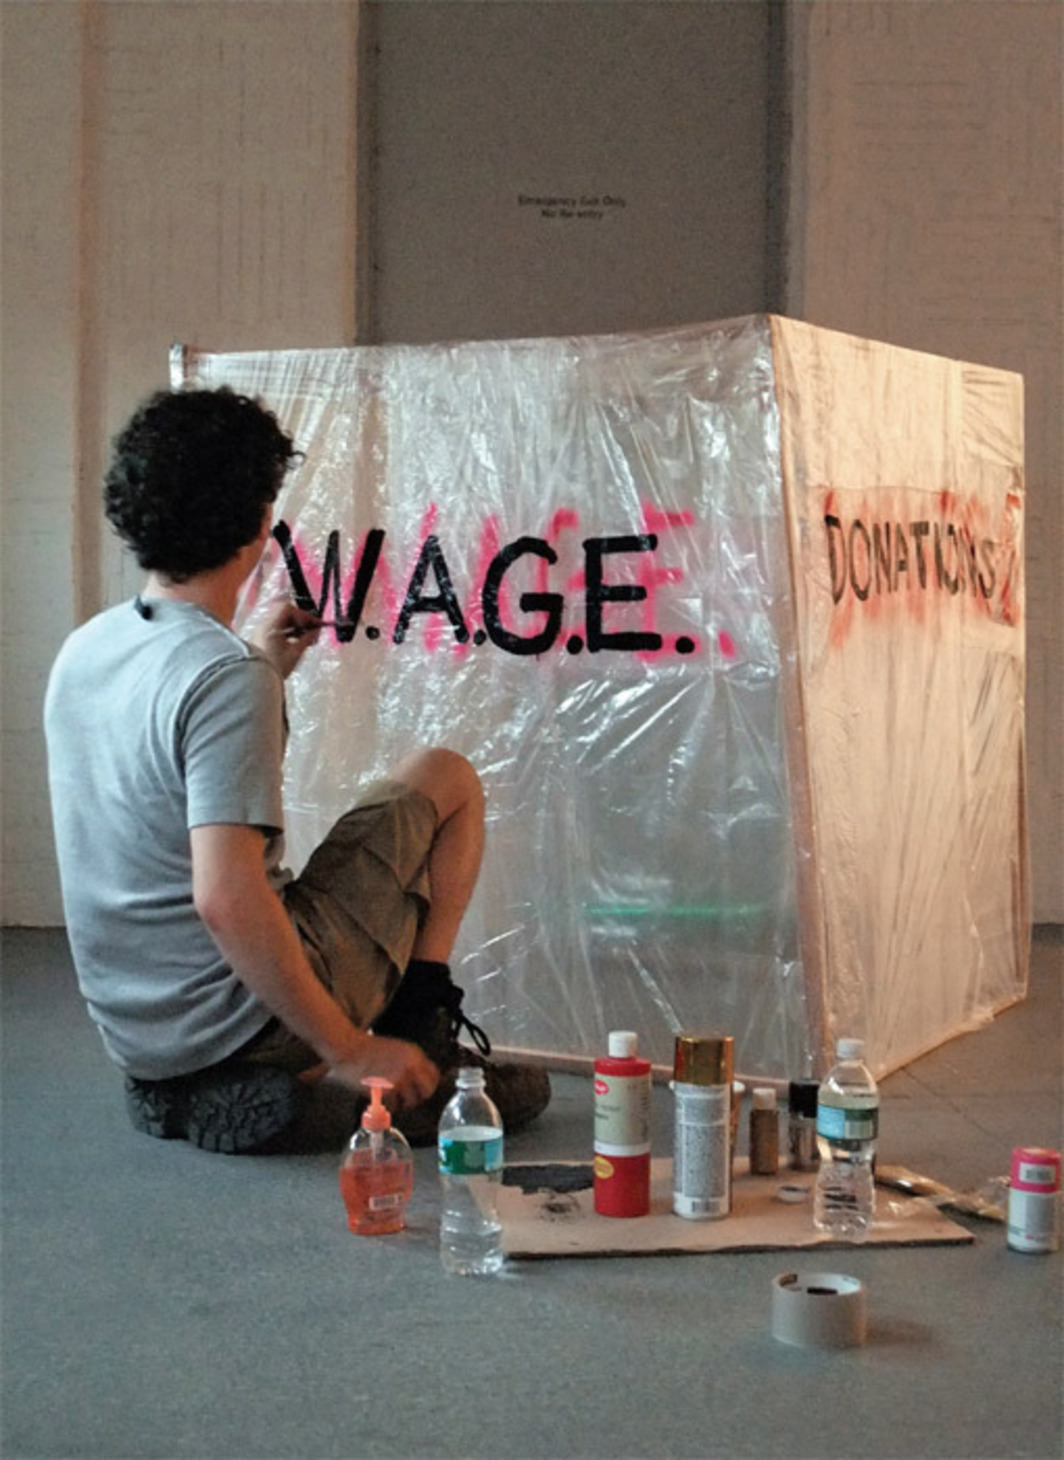 Dean Daderko preparing a complaint, suggestions, and donation box for W.A.G.E.'s booth at No Soul for Sale: A Festival of Independents, X Initiative, New York, June 22, 2009.